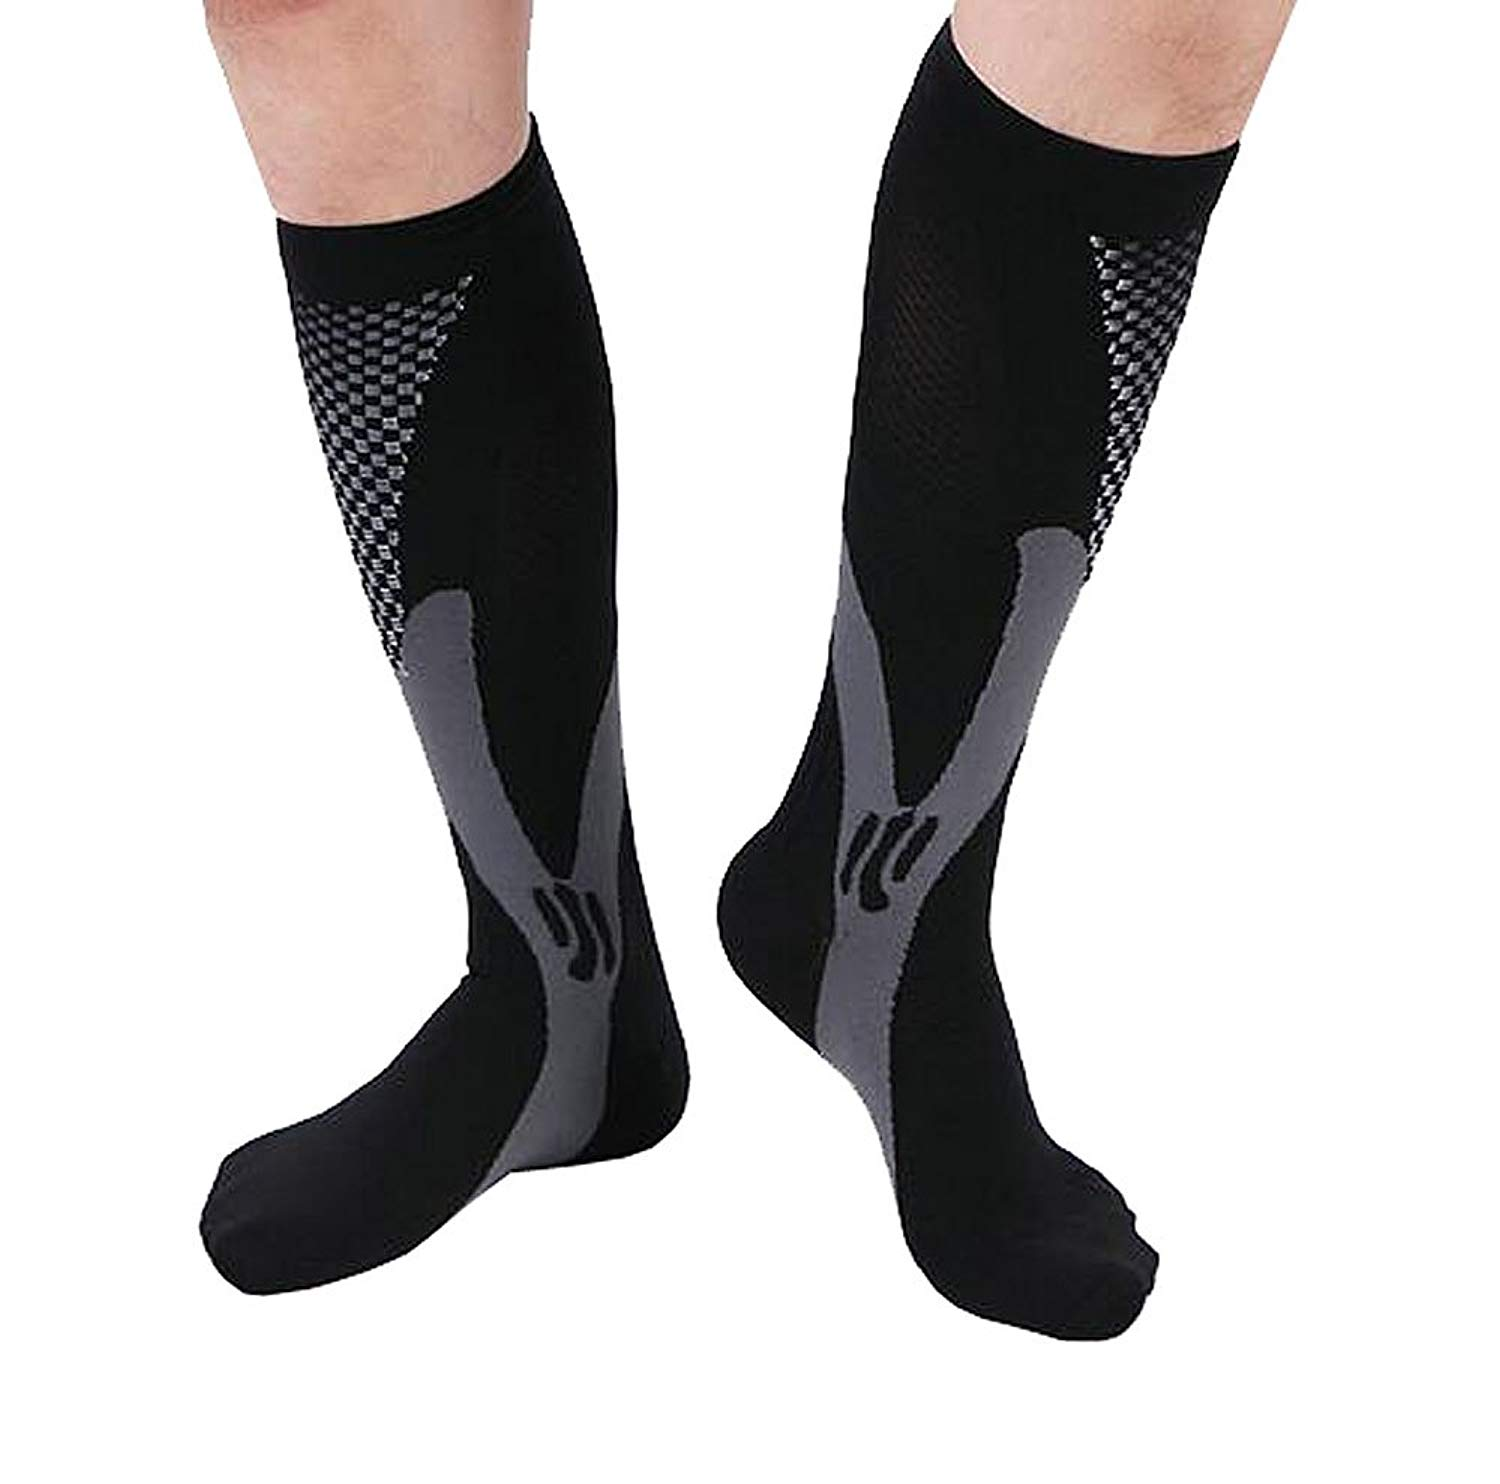 f4c320df66fed Get Quotations · Compression Socks,Urwish Unisex Athletic Stockings for  Recovery-Nurses,Sports, Maternity,